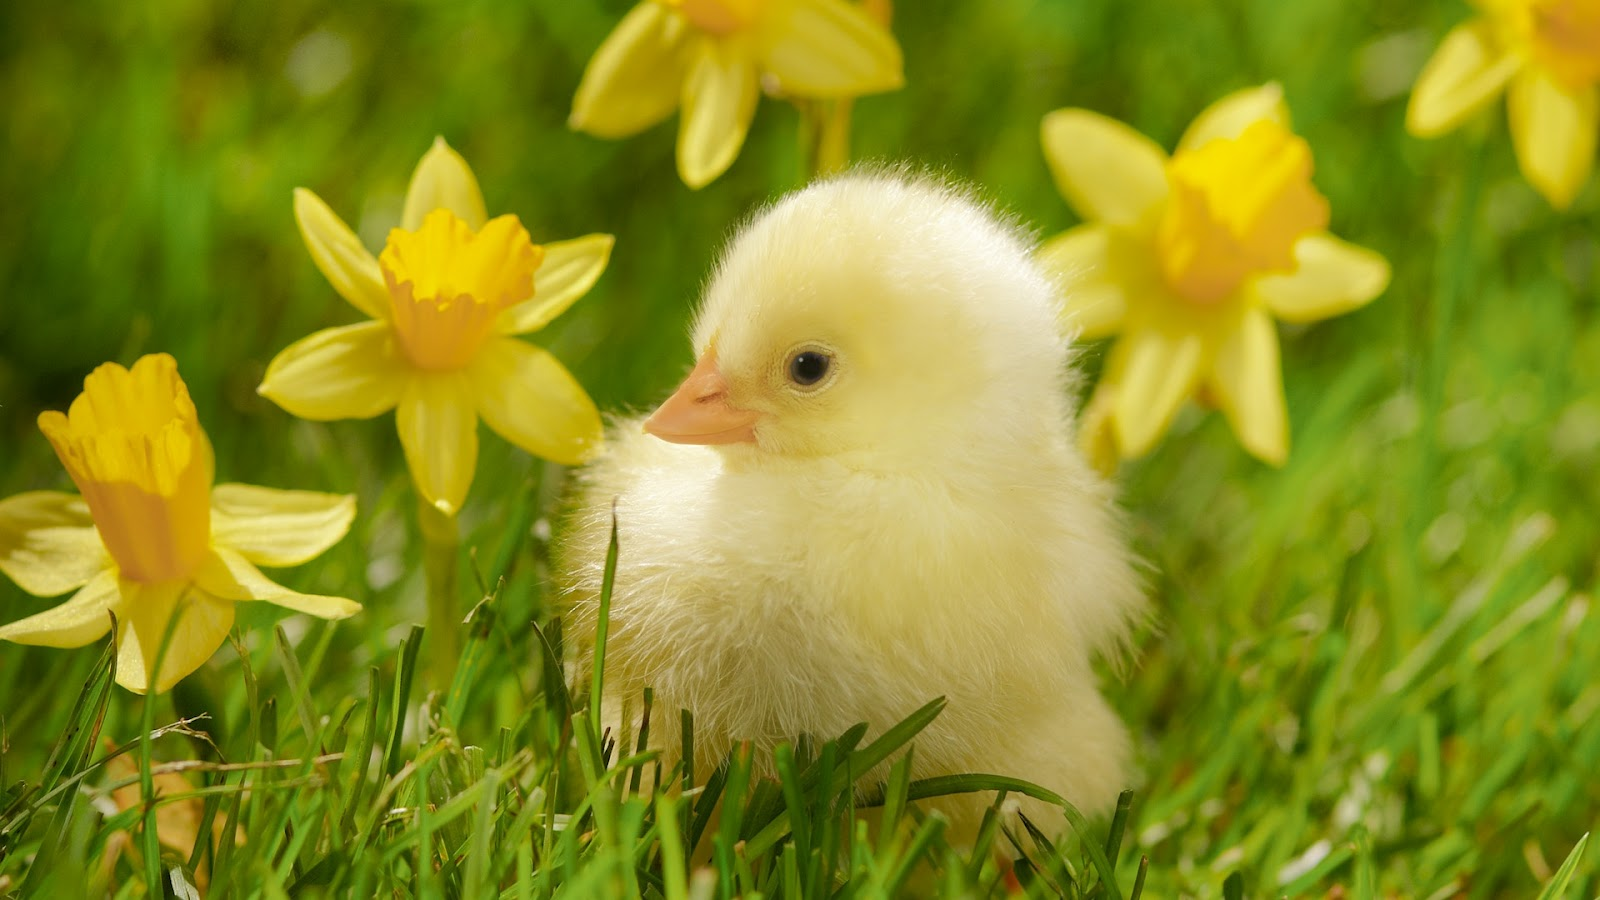 Baby Animal Wallpapers Baby Animal Pictures 1600x900